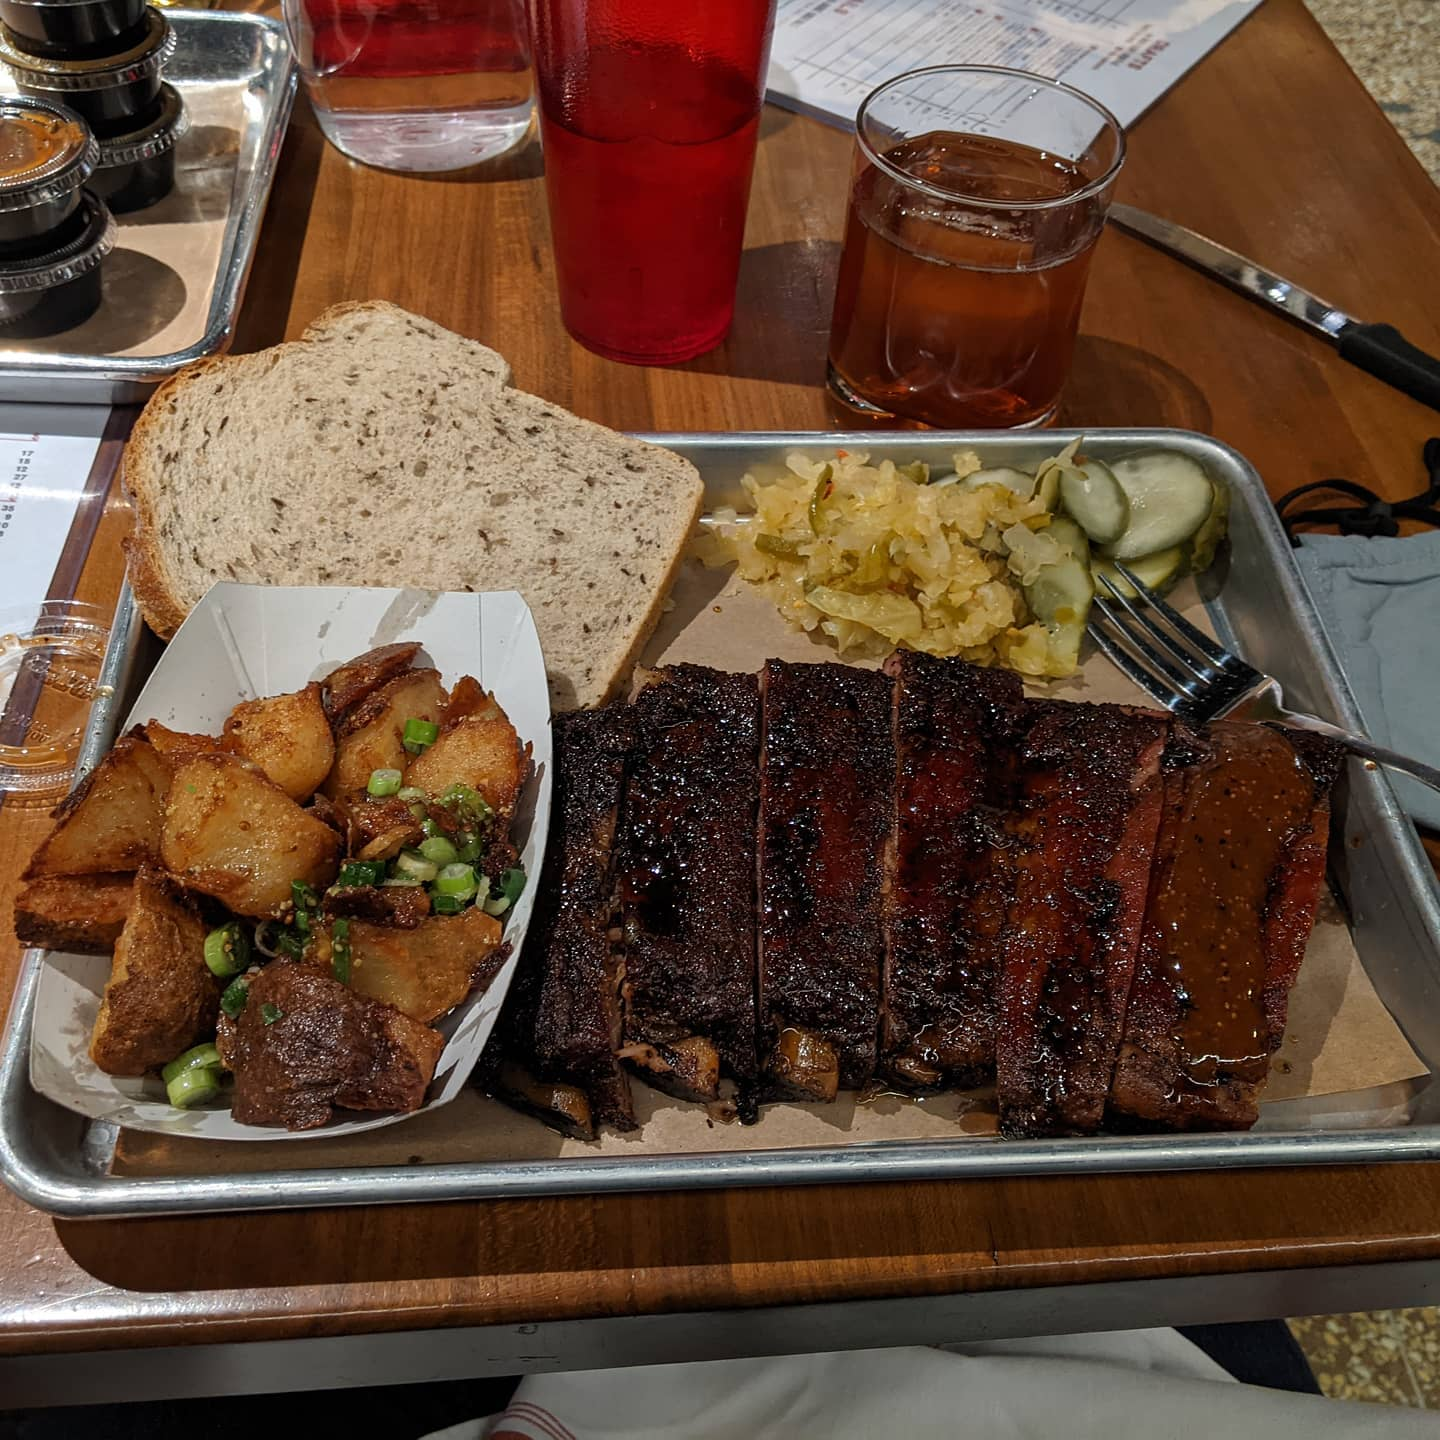 I know I've been here before, but I couldn't resist more #mabelsbbq #chefsymon #cleveland